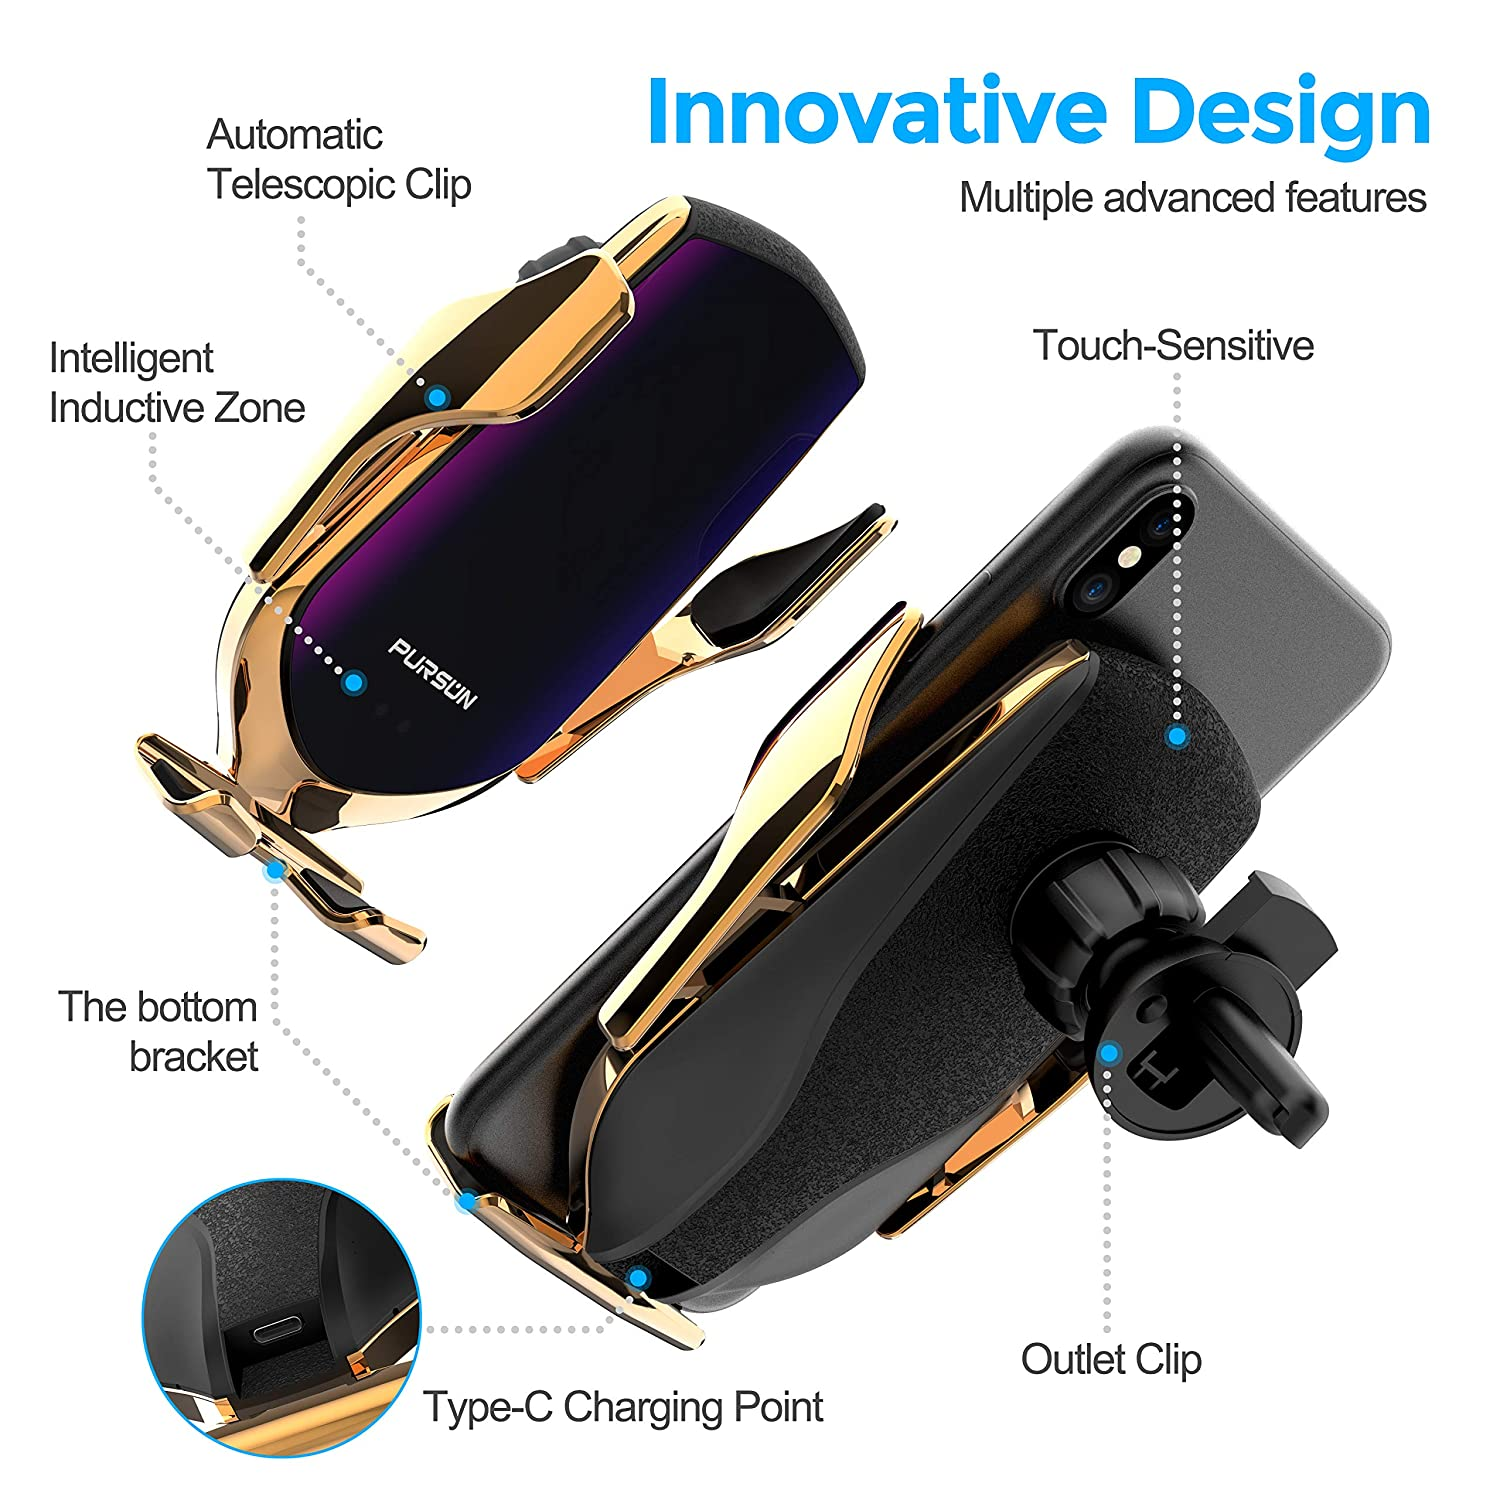 Samsung 2020 Updated Universal Air Vent Car Cell Phone Holder Hands-Free One Touch Automatic Clamp Car Phone Mount Cradles for iPhone Google Pixel Nokia and More Smartphone Moto